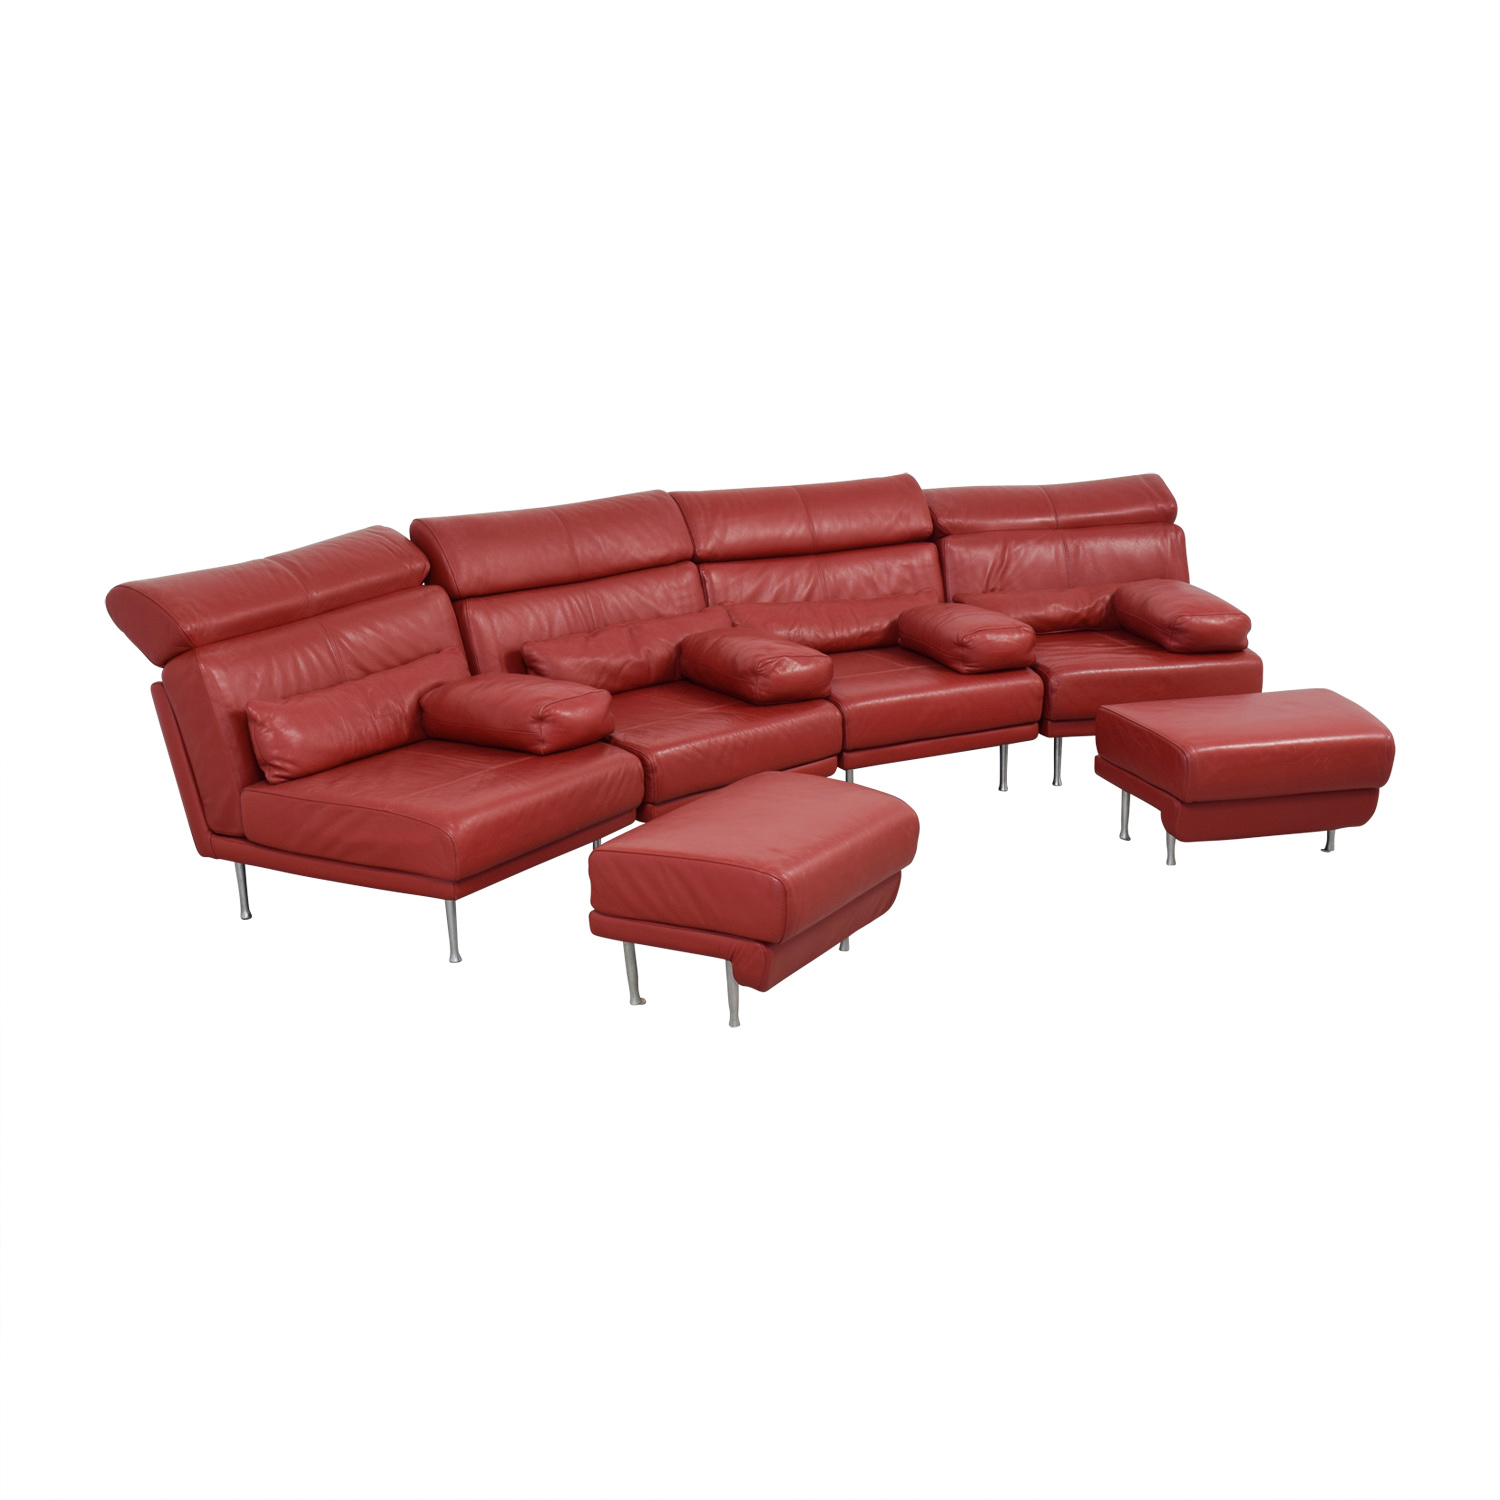 natuzzi arona 2 seater leather sofa bed emerald green ikea 90 off red sectional with two